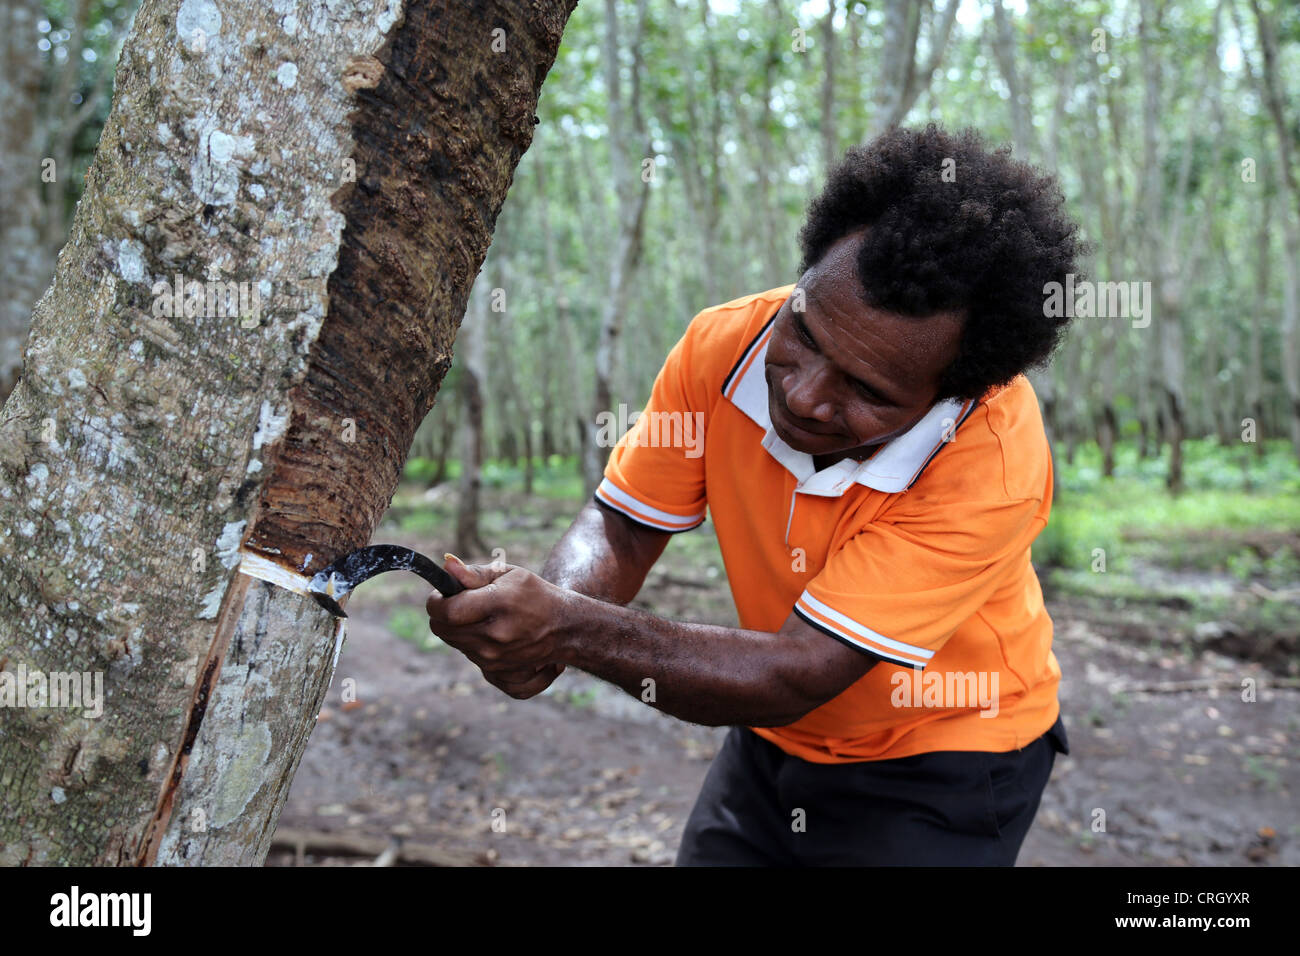 Extraction of latex from rubber trees, Central Province, Papua New Guinea - Stock Image